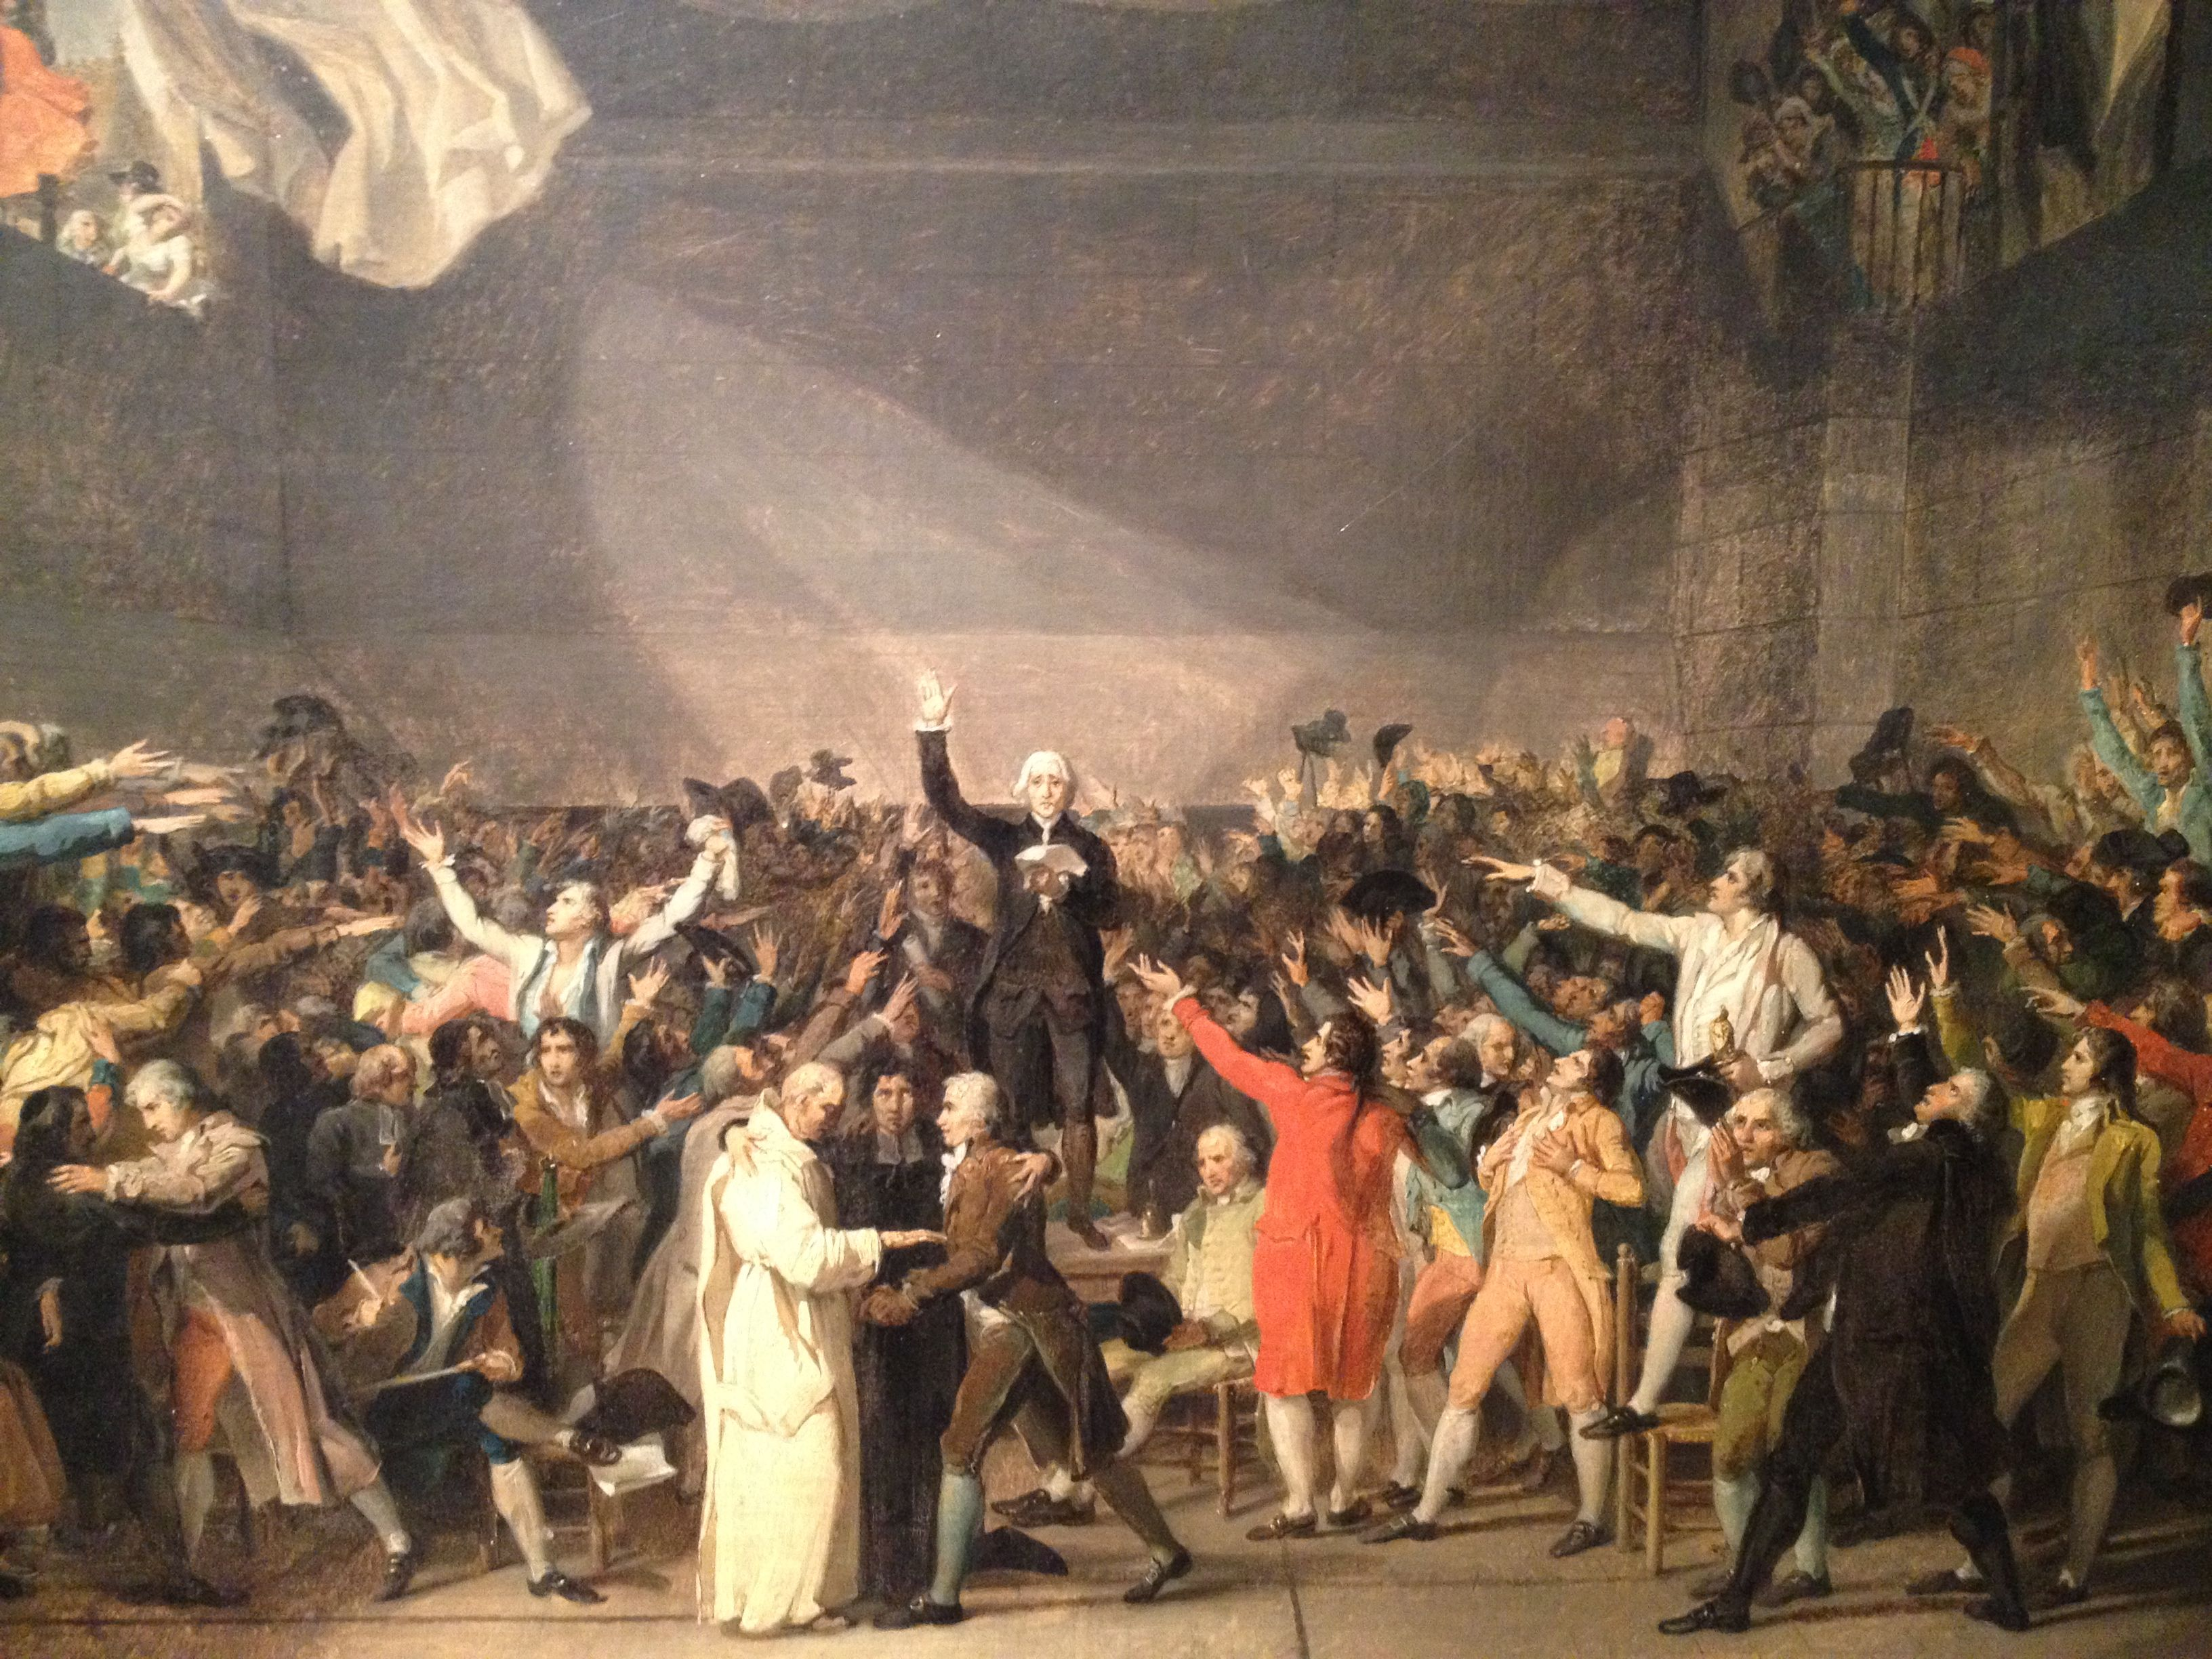 On 20 June 1789 France S Third Estate Took The Oath Of The Tennis Court In The Jeu De Paume French Revolution Learning French For Kids Historical Painting